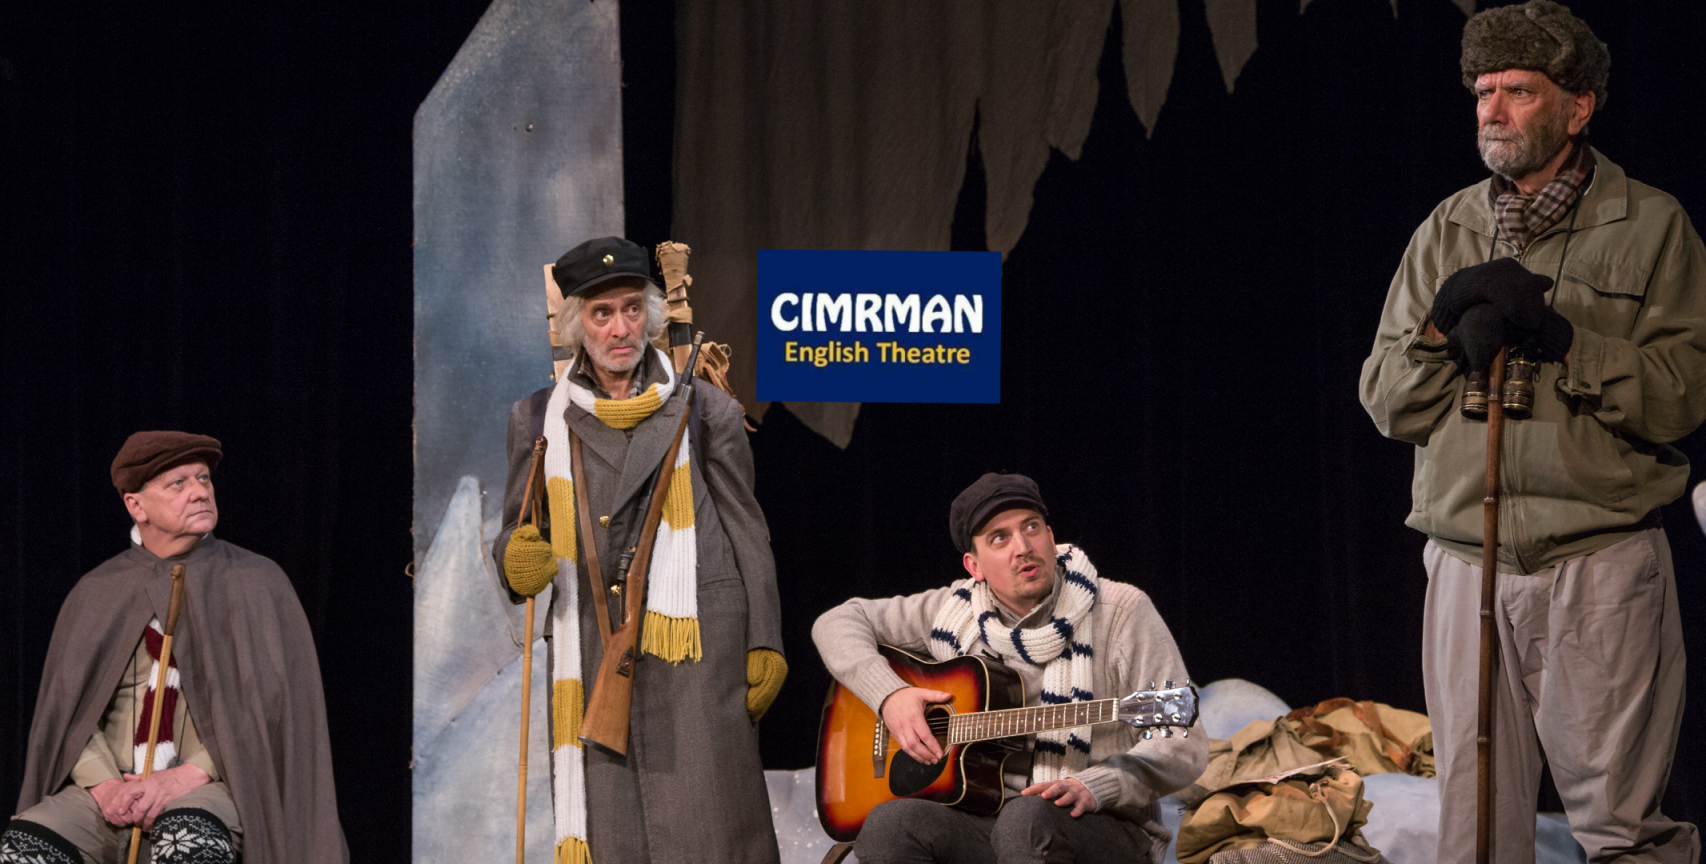 Cimrman English Theatre